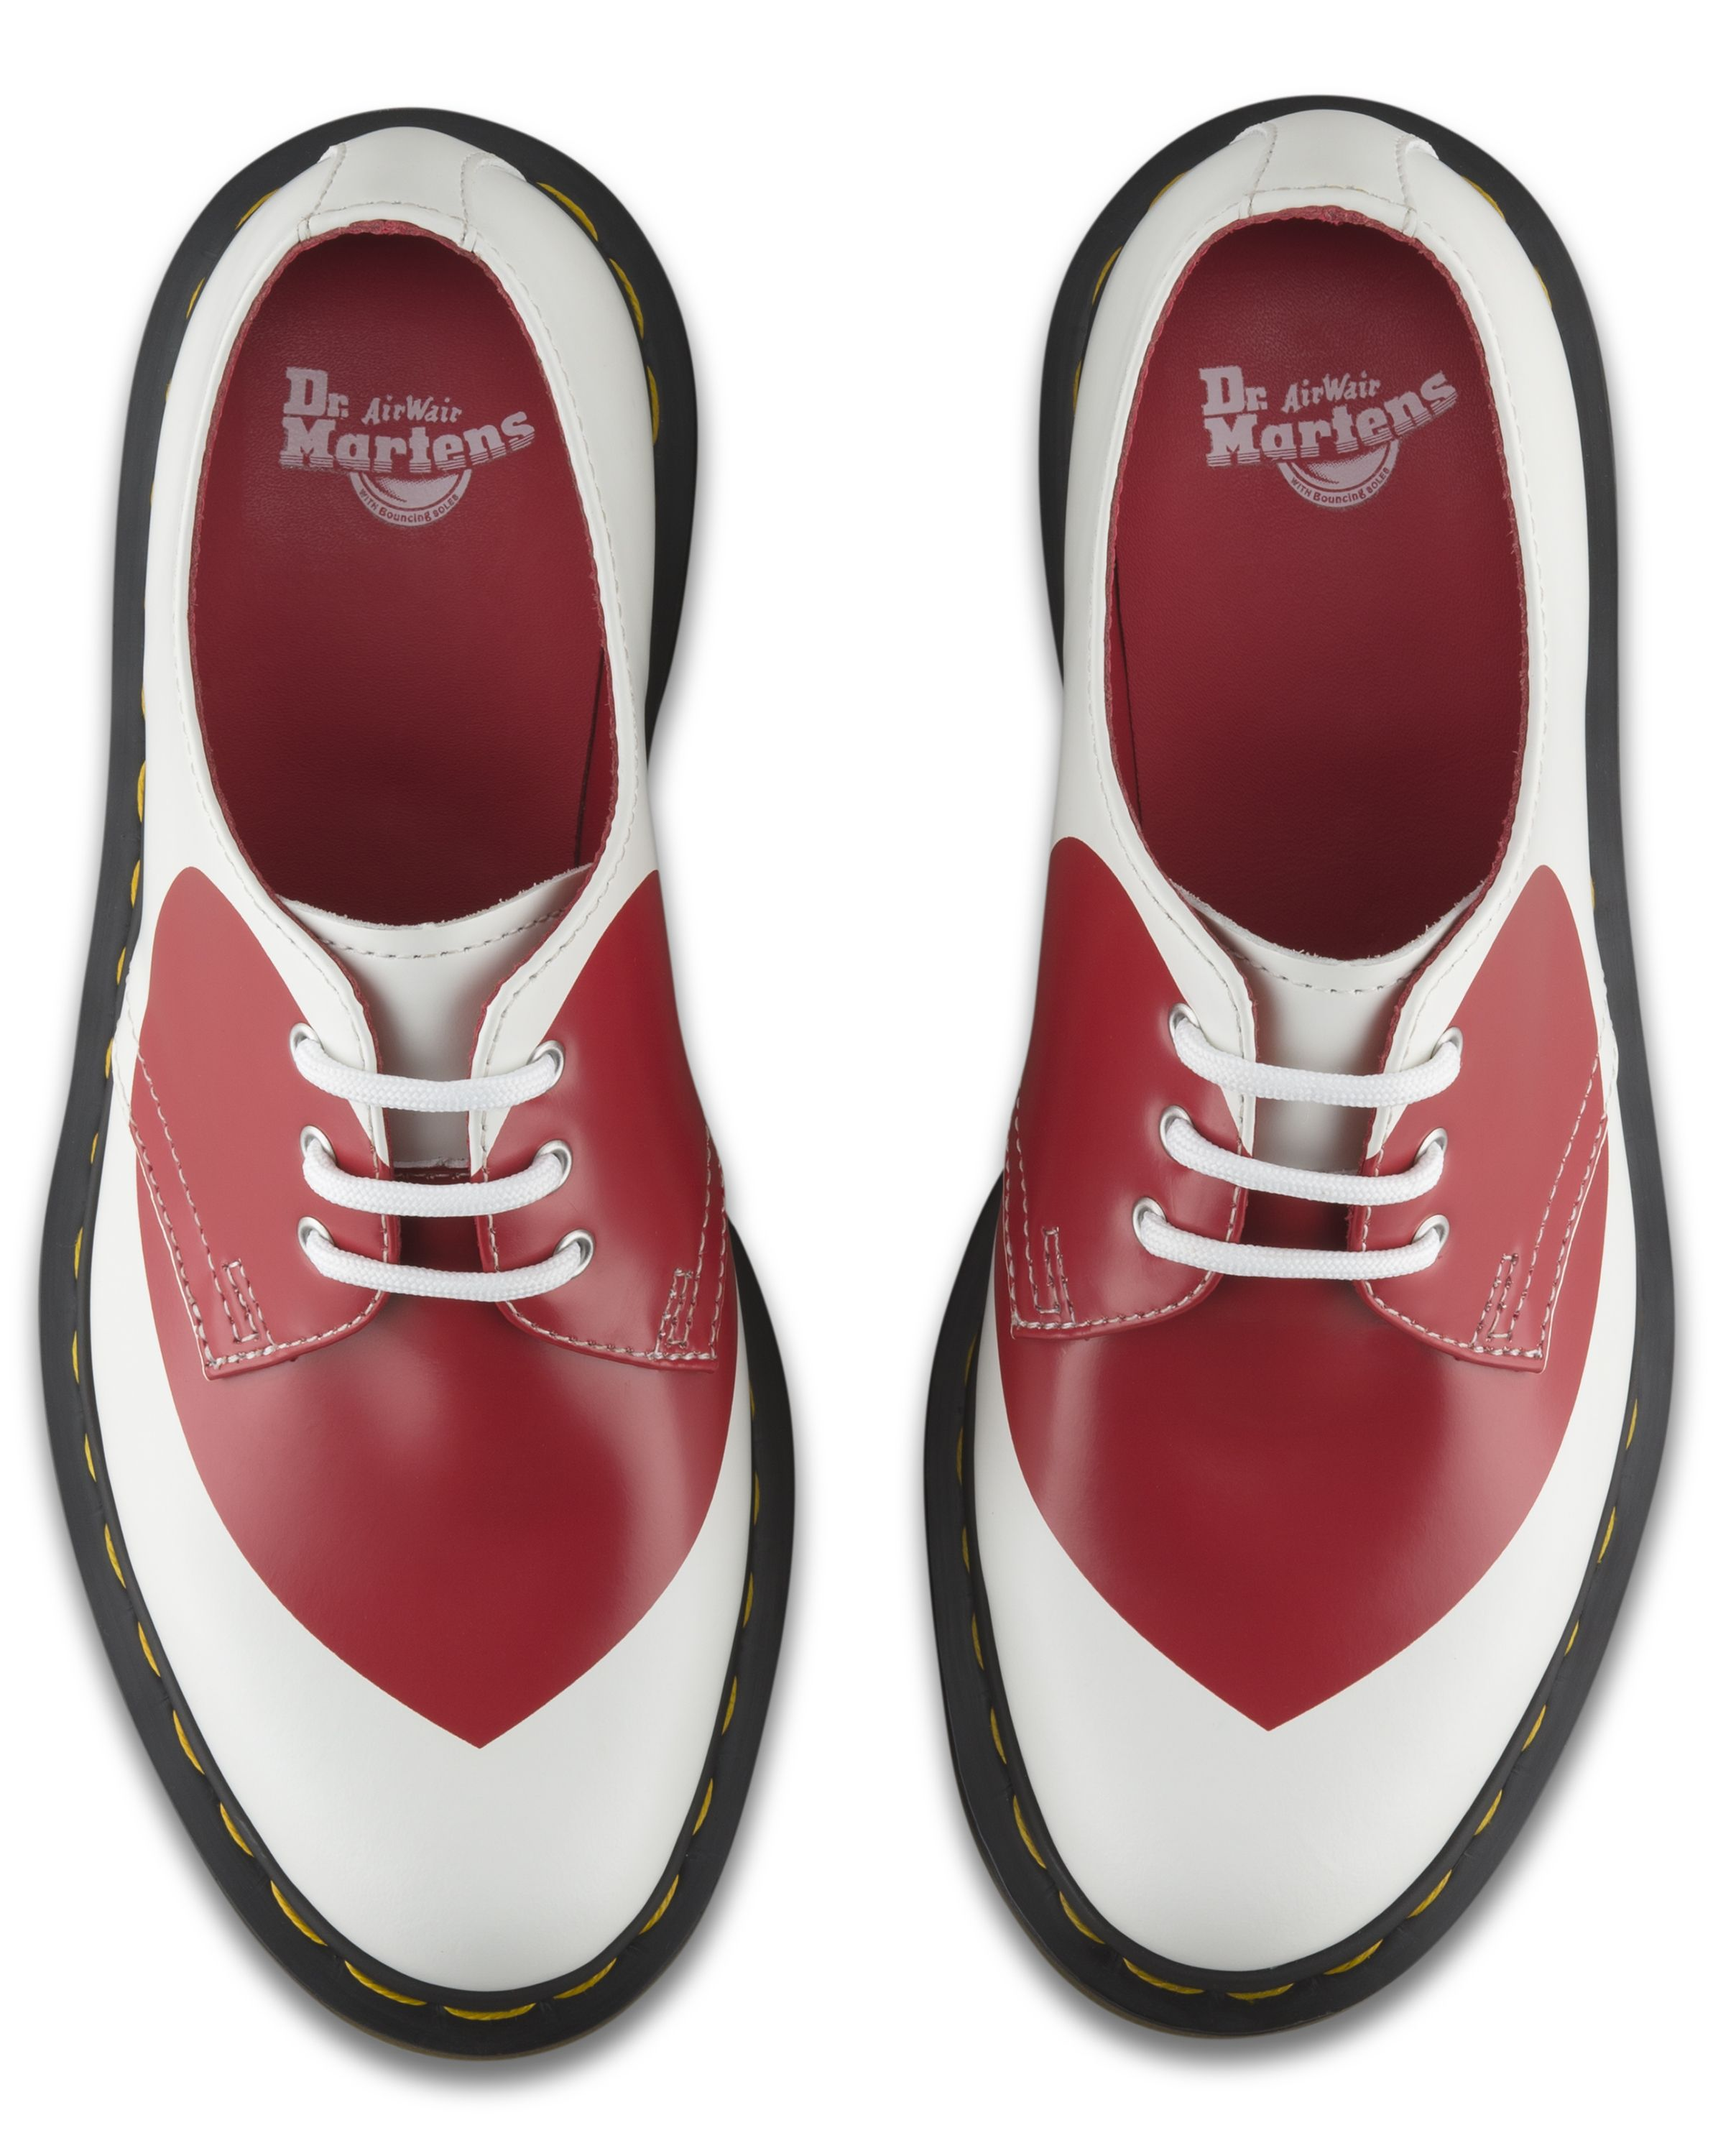 Dr. Martens Celebrates Valentine's Day With Heart Collection